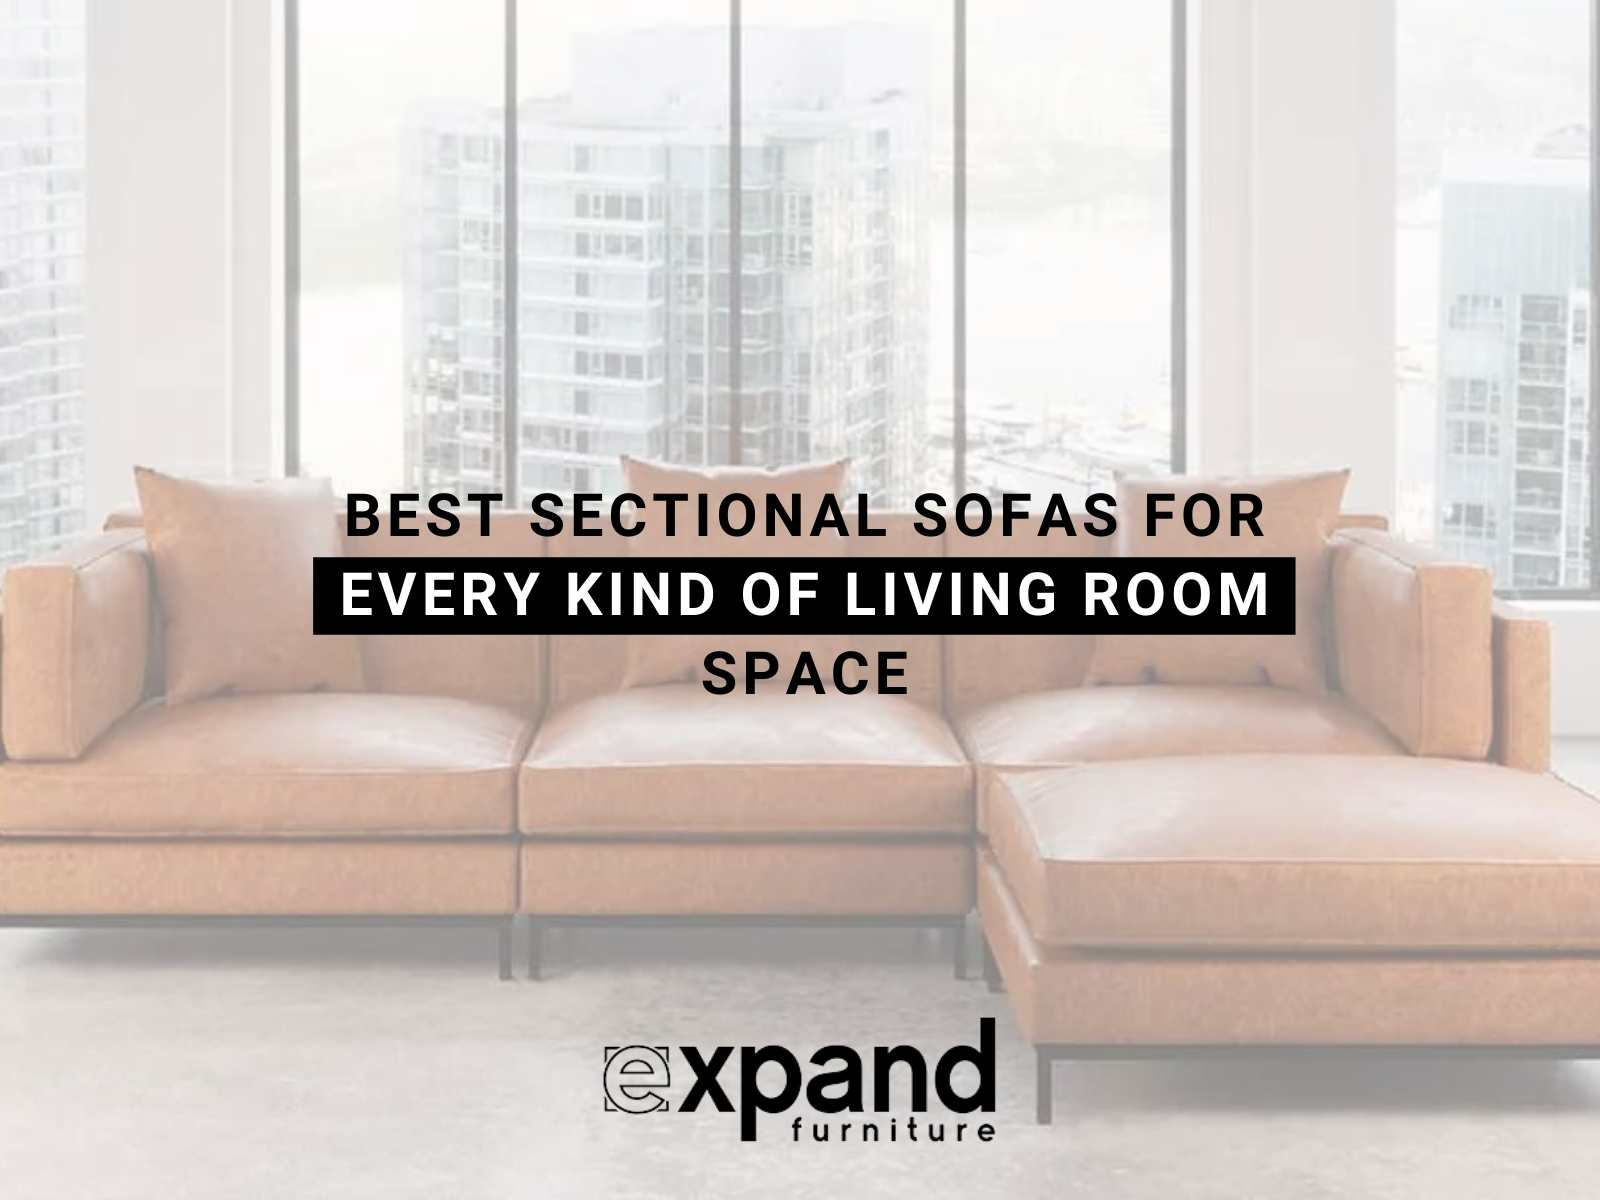 Best Sectional Sofas For Every Kind of Living Room Space